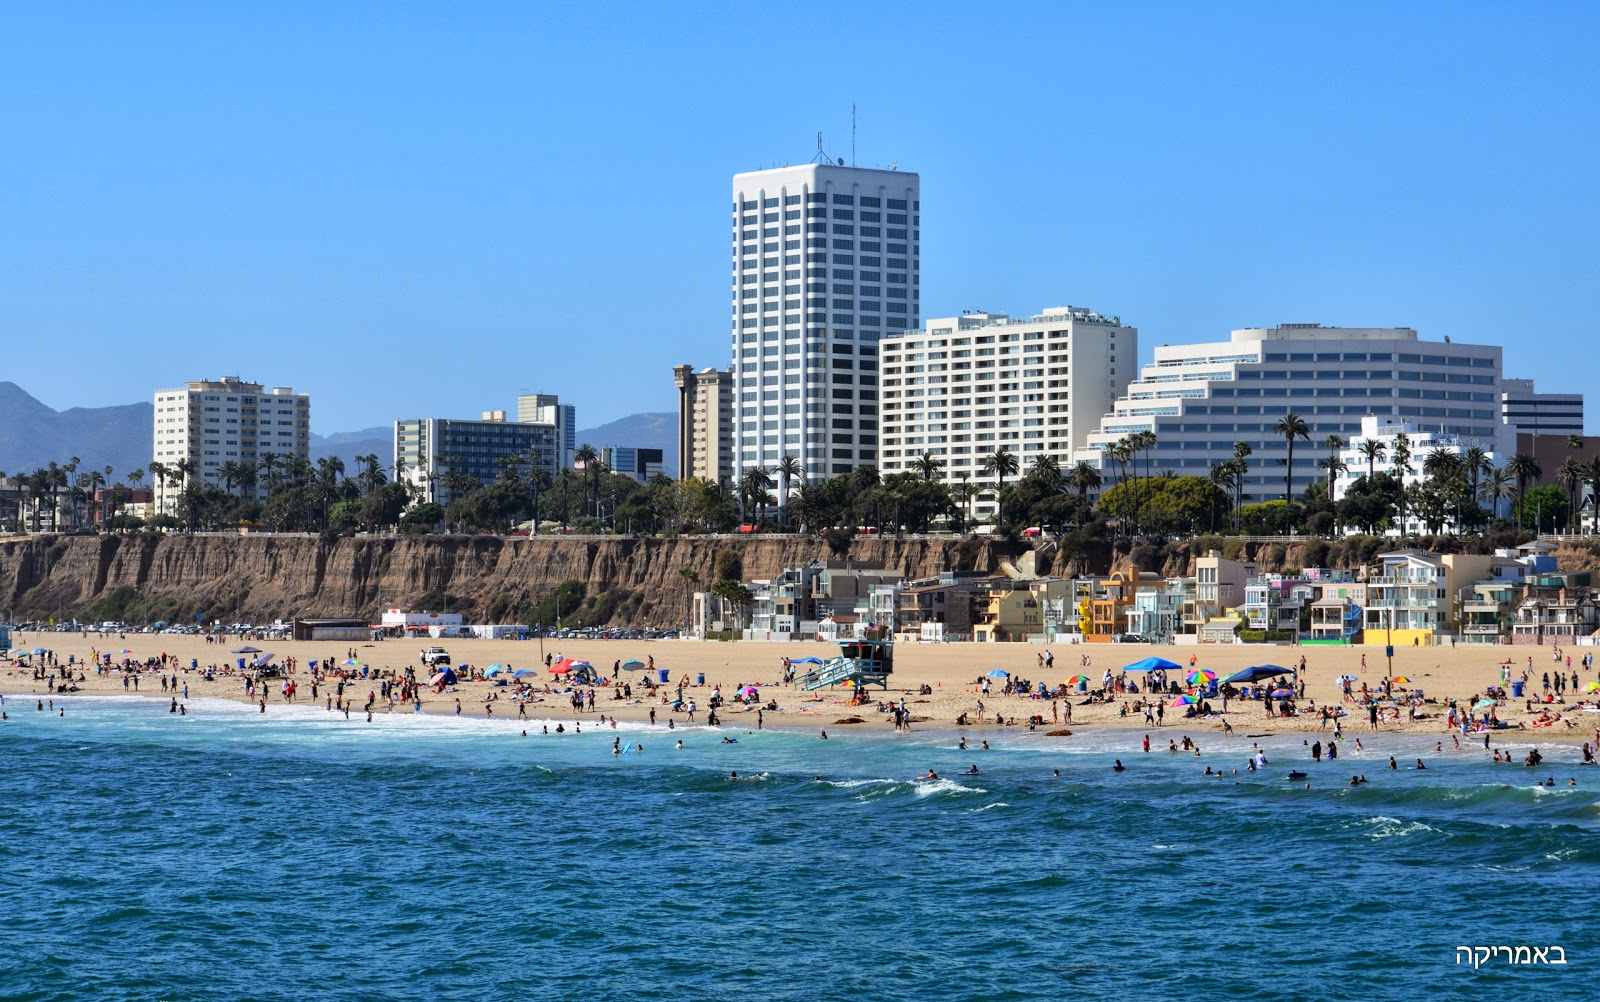 Los Angeles Beach Hotels For Families